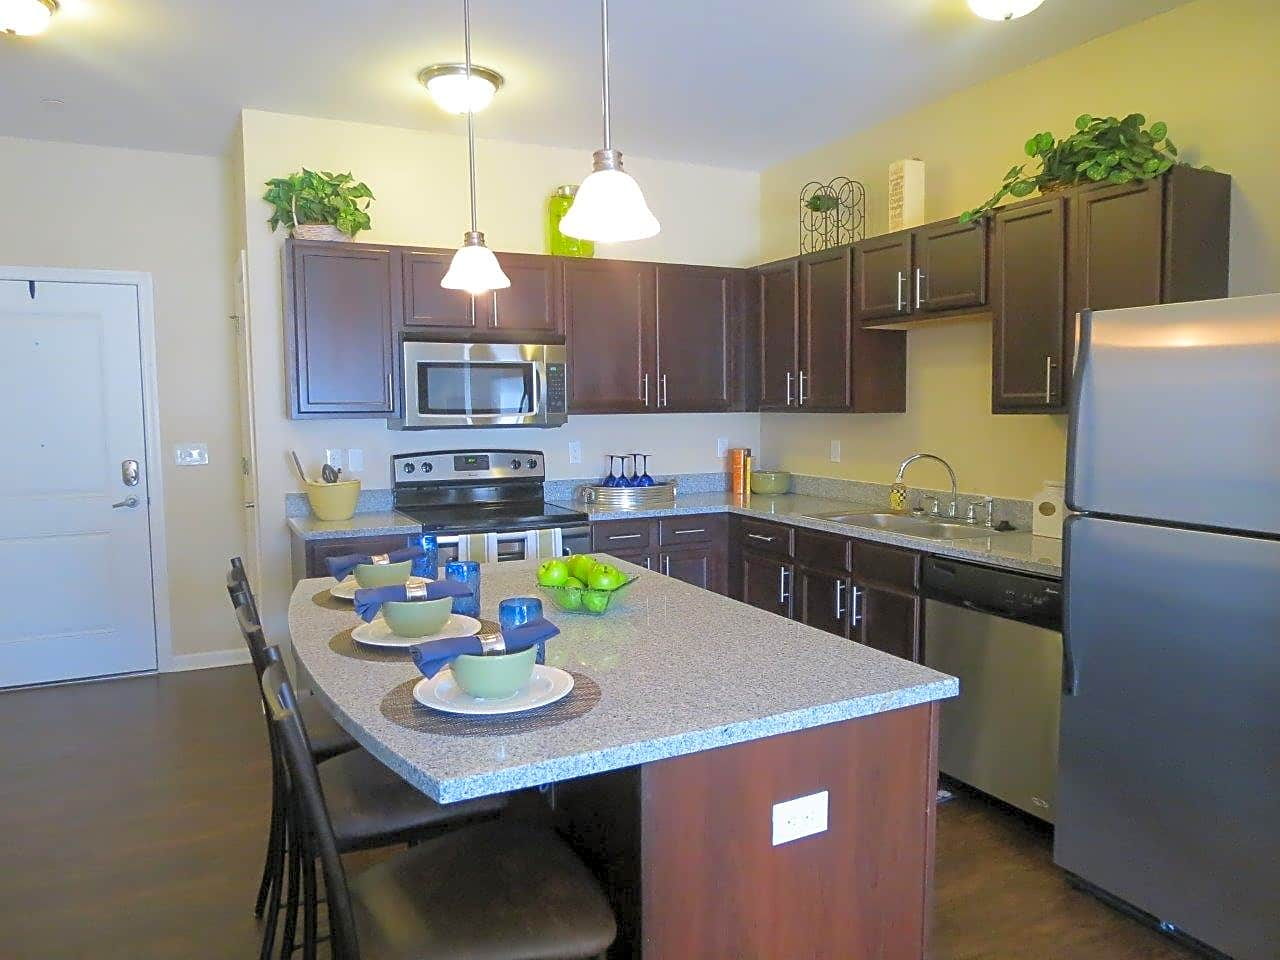 Apartments Near Seton Hill Marquis Place for Seton Hill University Students in Greensburg, PA